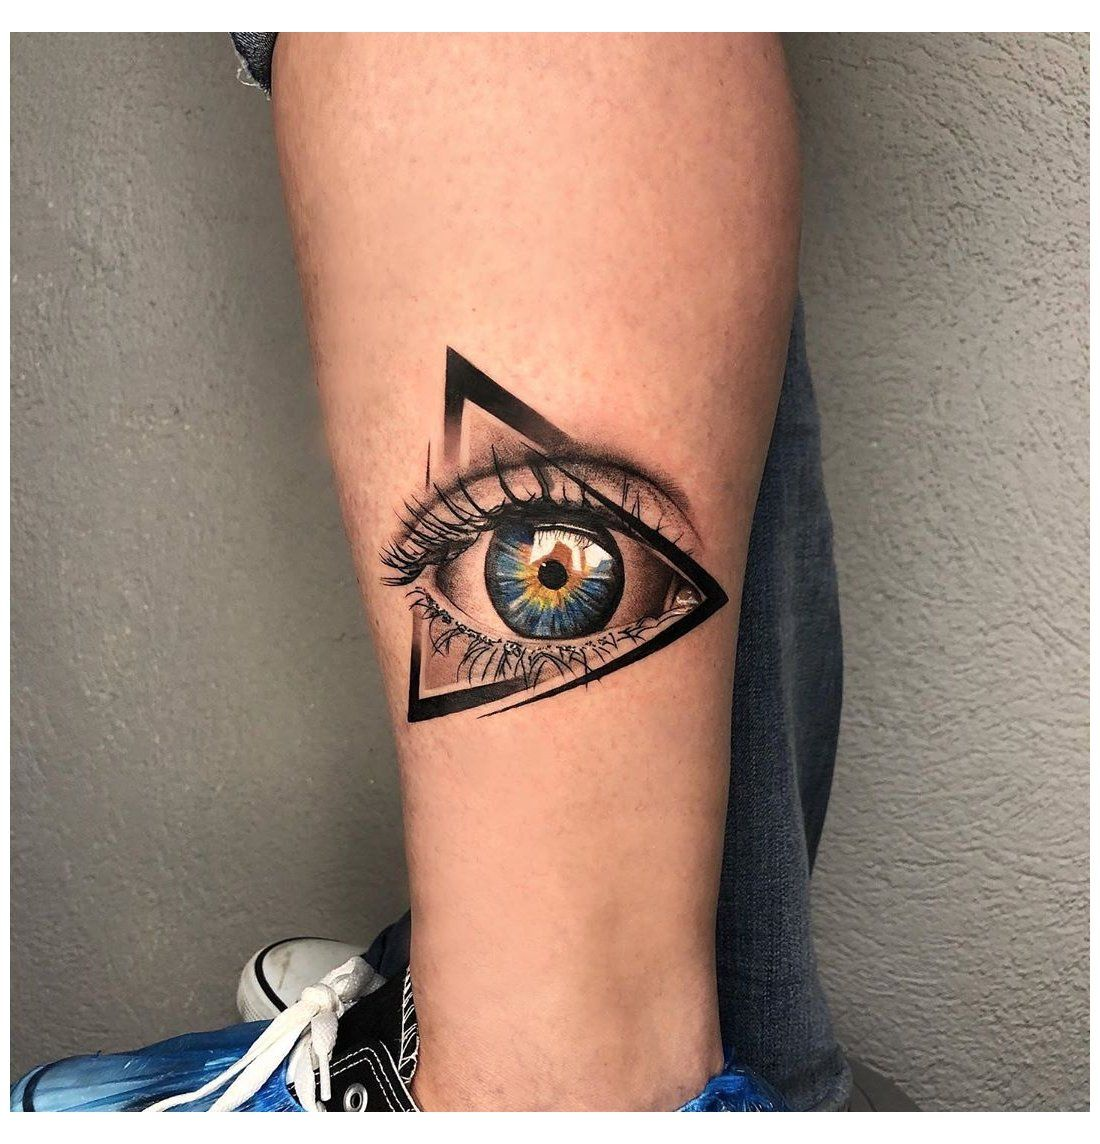 Top 105 Best Third Eye Tattoos 2020 Inspiration Guide Eye Watch Tattoo Search For Inspiration To Captu In 2020 Third Eye Tattoos Eye Tattoo Realistic Eye Tattoo